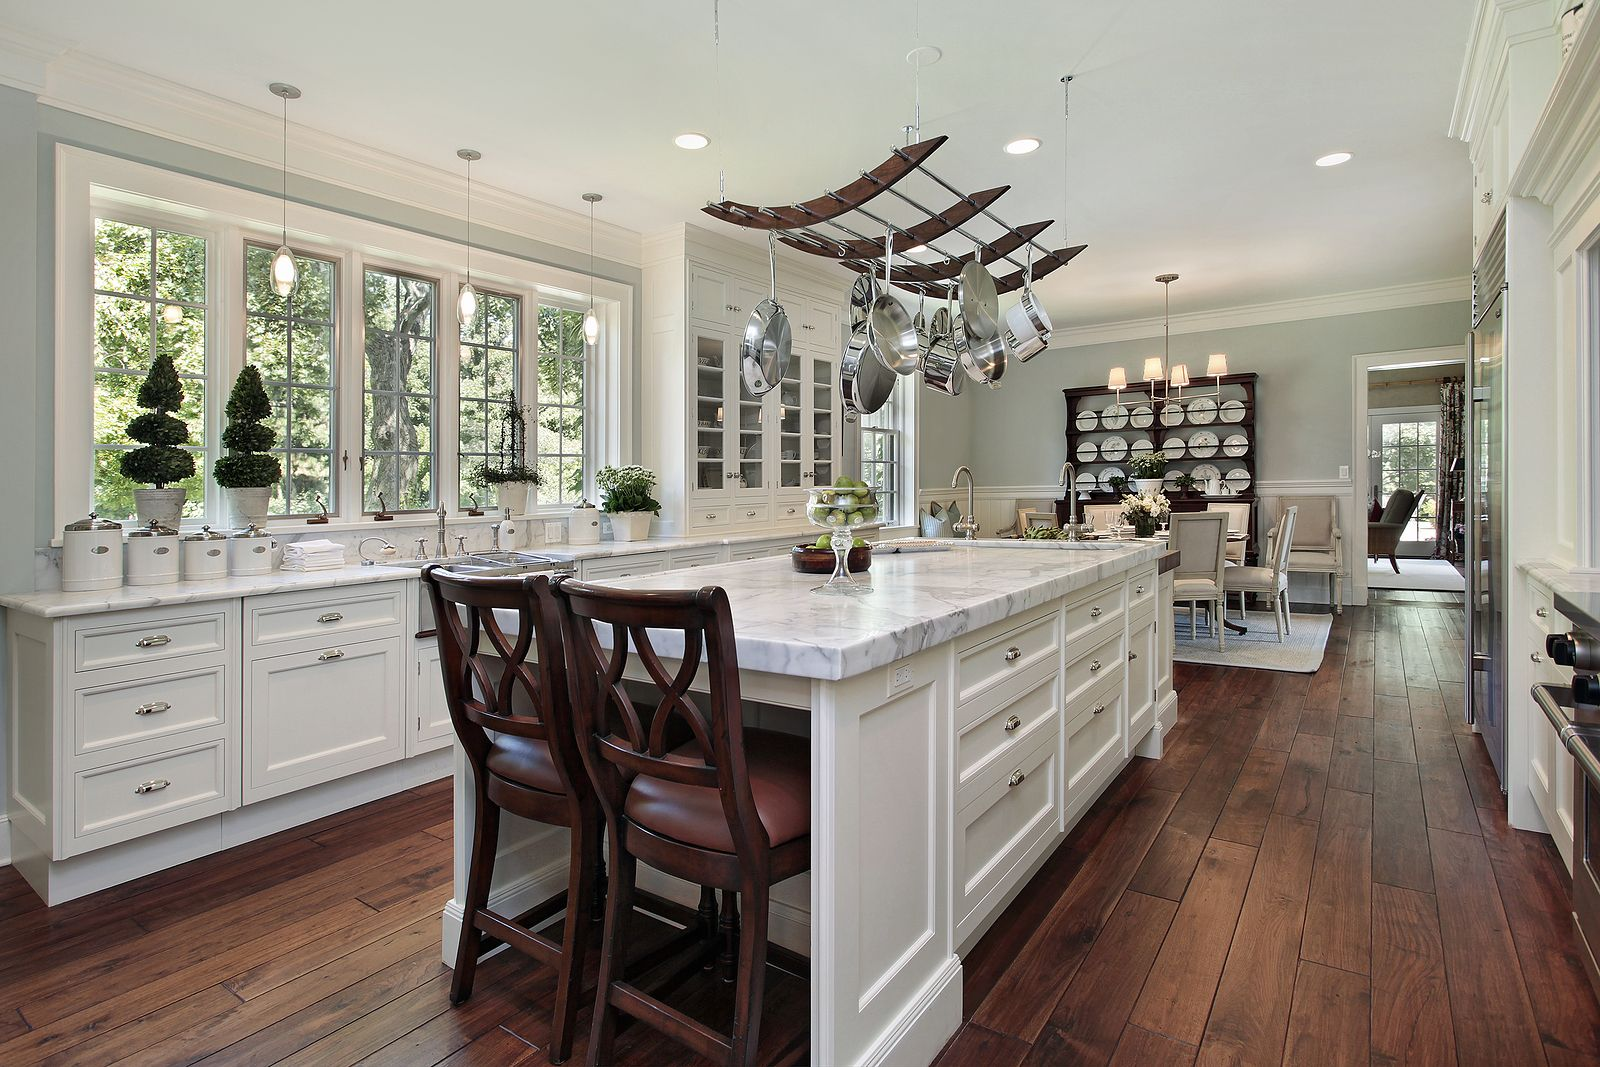 Wood Floor For Kitchens Dark Floors In Beach Houses Kitchen Decorating Design Ideas With